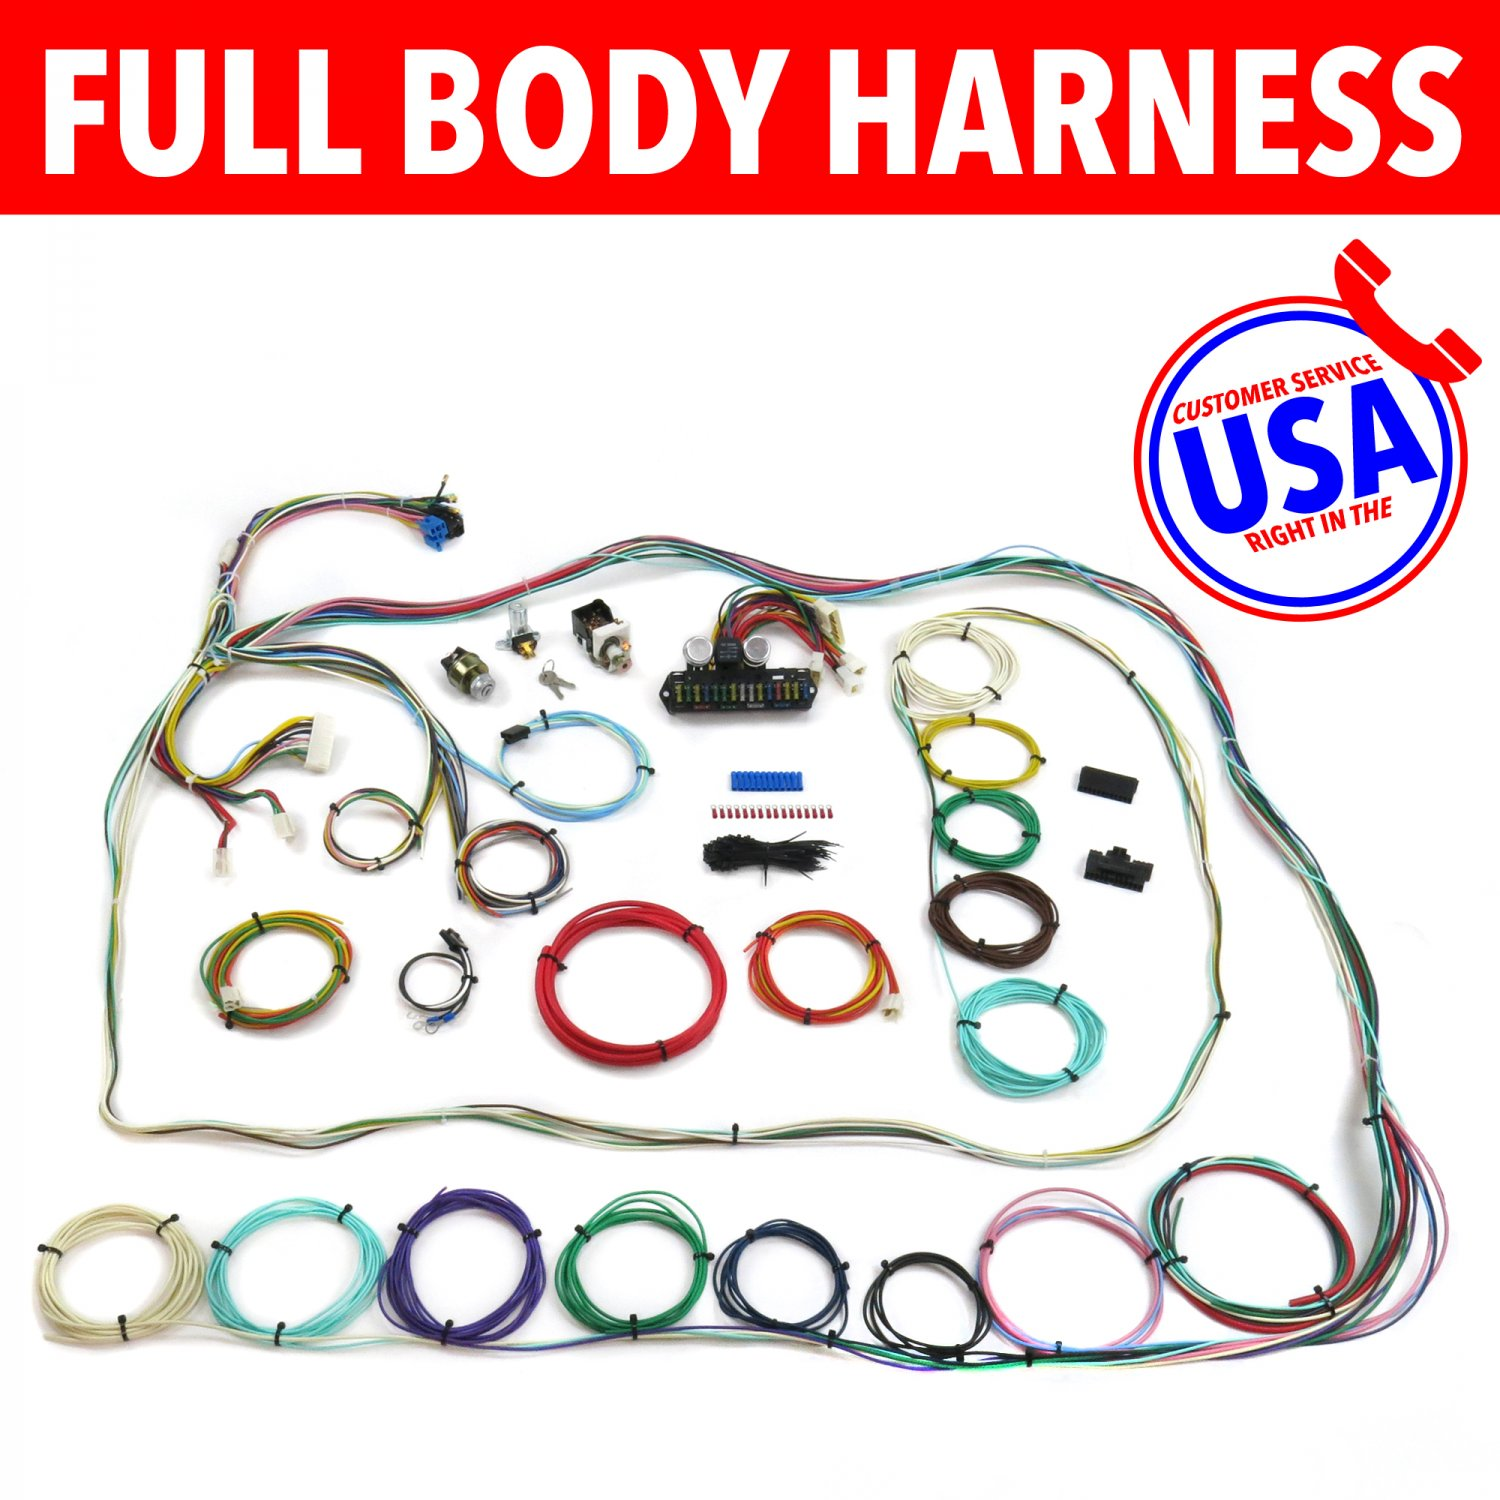 67 72 Chevrolet C10 C15 Rear Coil Truck Wire Harness Upgrade Kit 1963 Buick Wiring Fits Painless Bar Product Description C